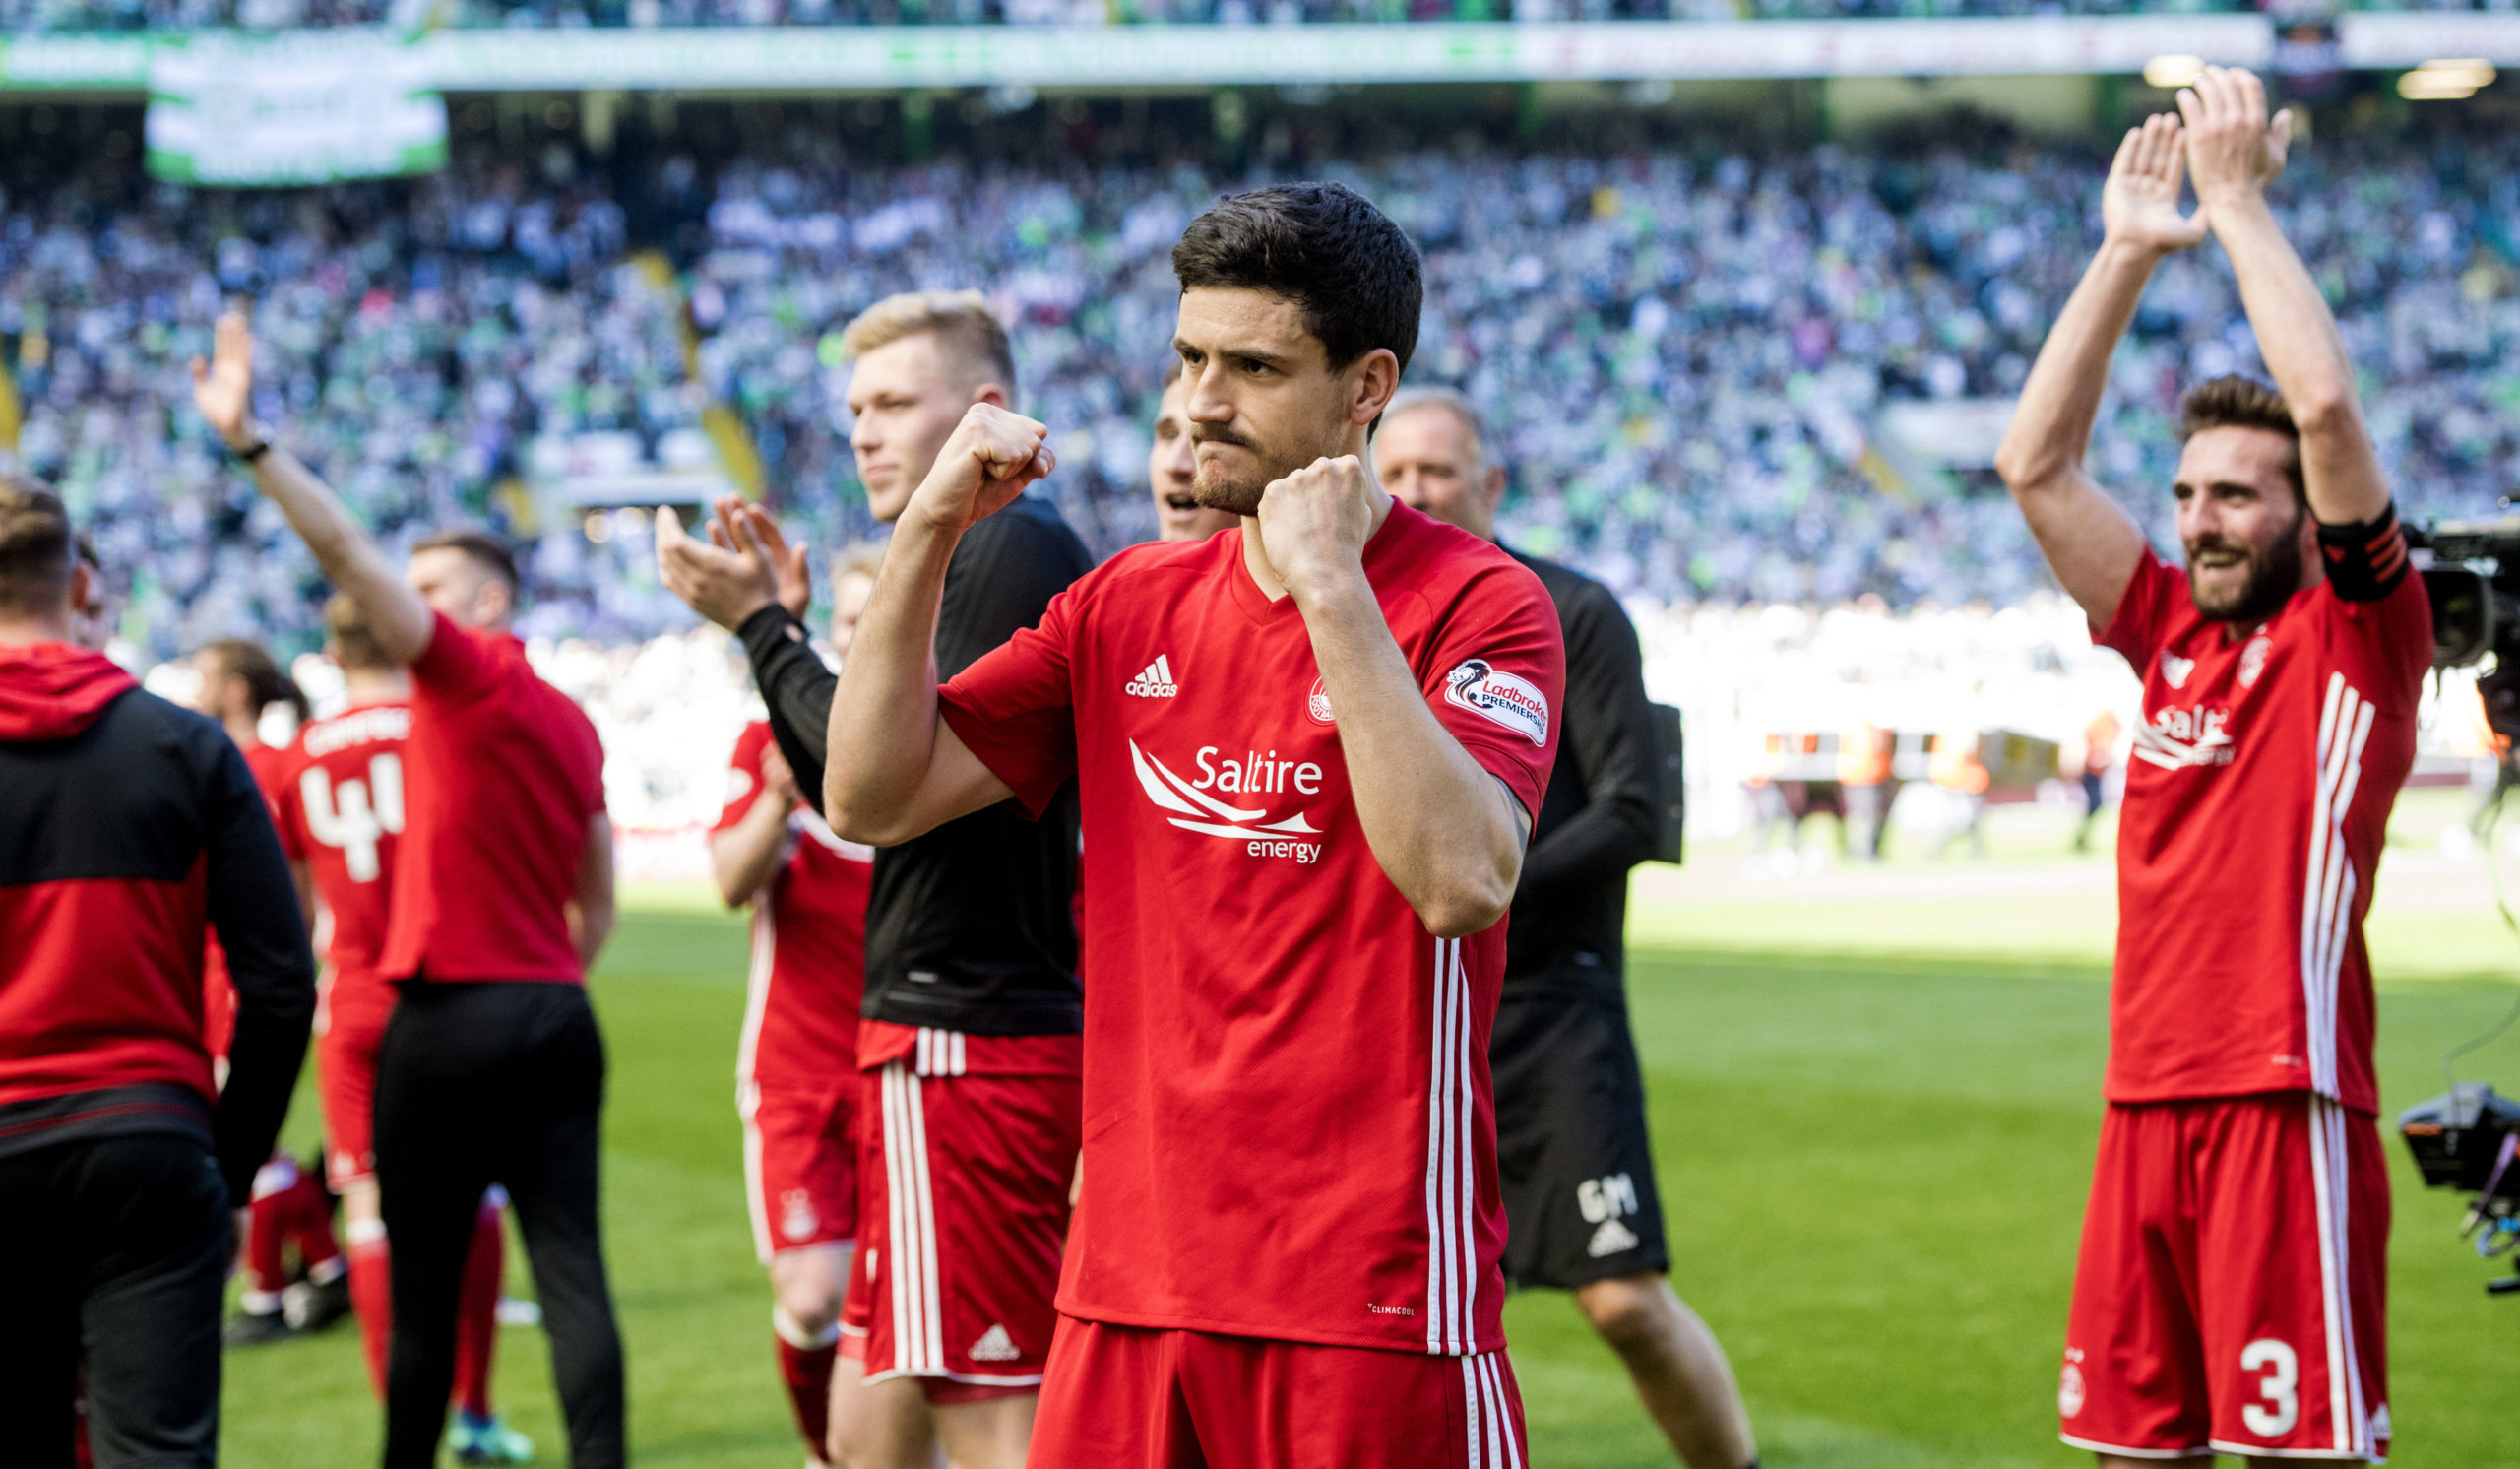 Former Aberdeen defender Anthony O'Connor celebrates the final day win at Parkhead in 2018.